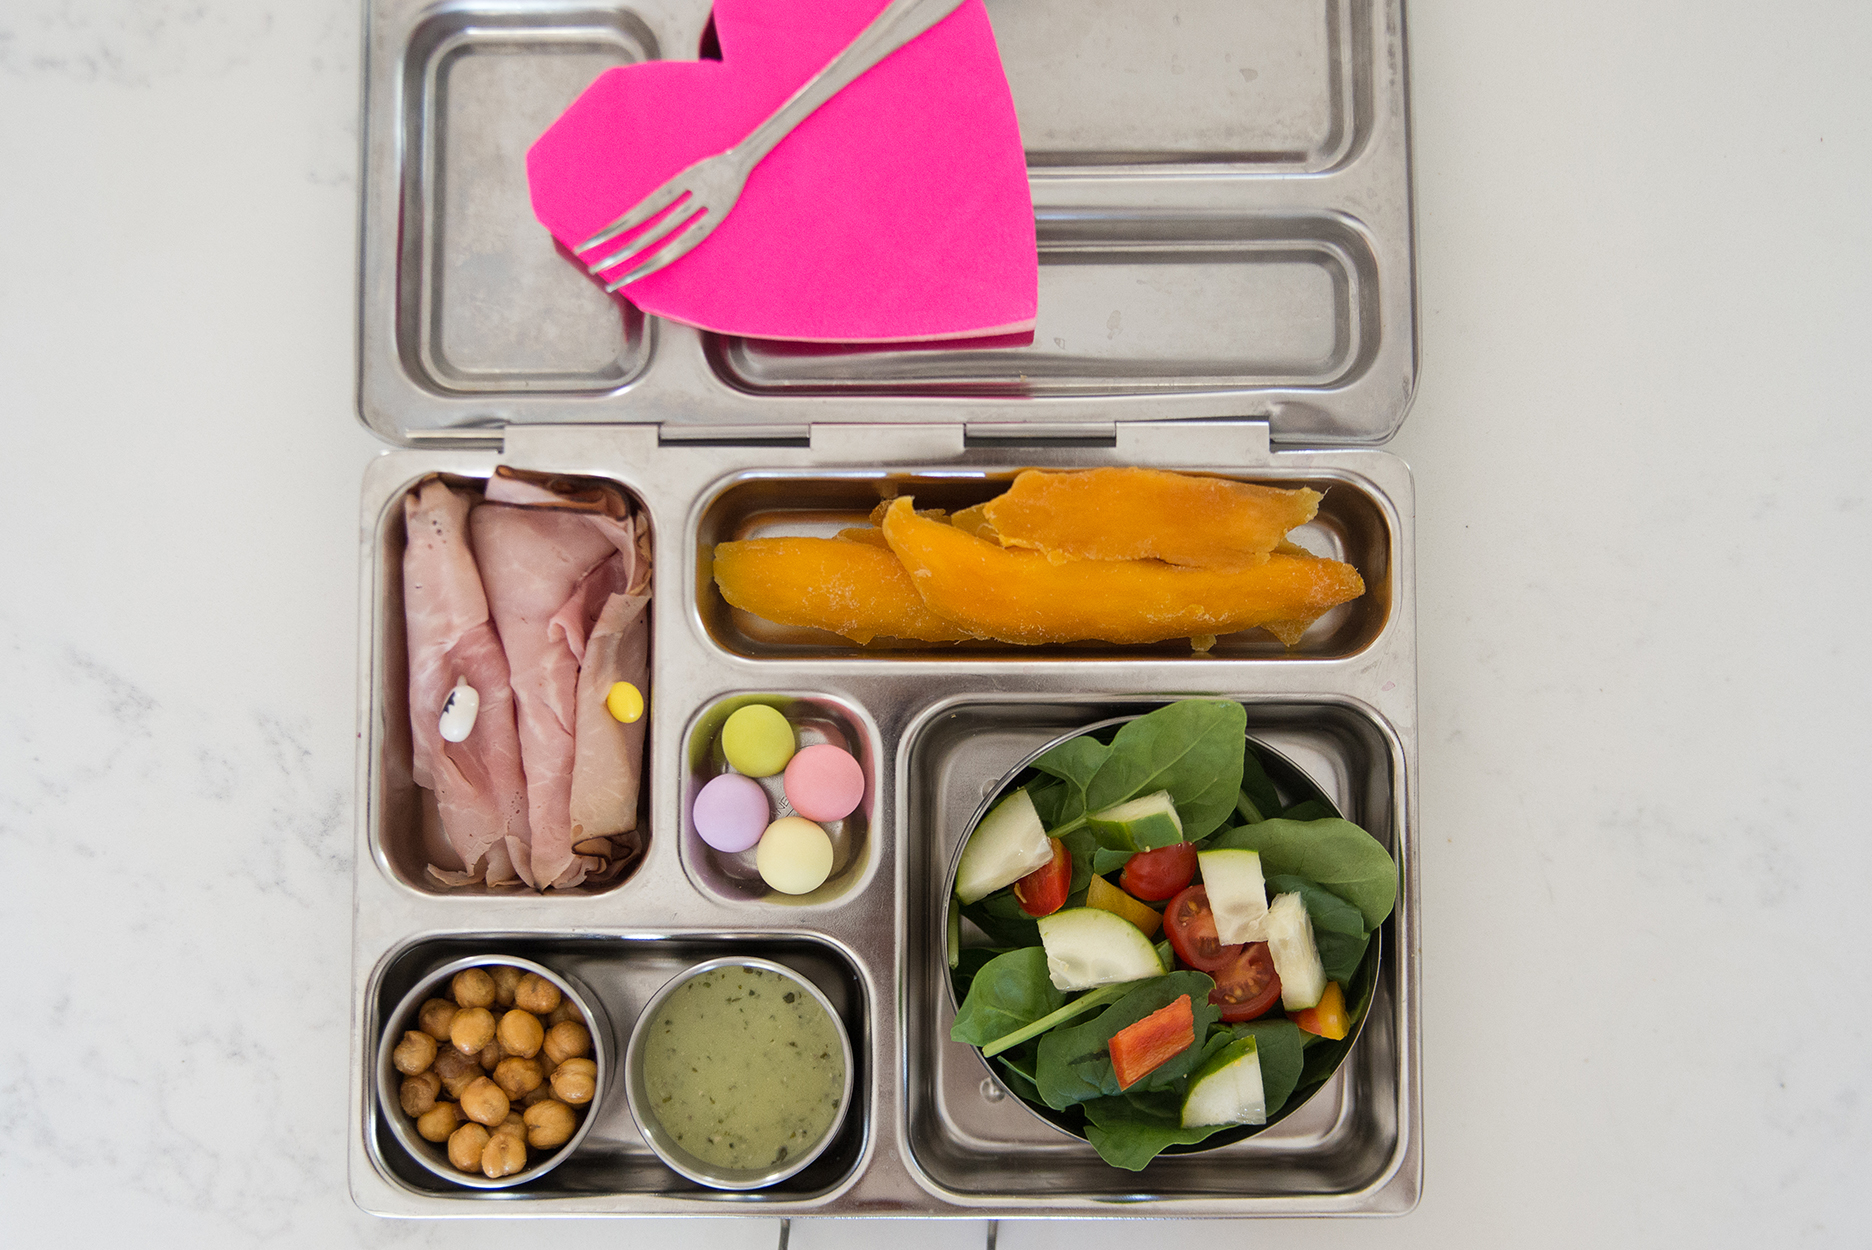 kids lunch in a stainless steel bento box